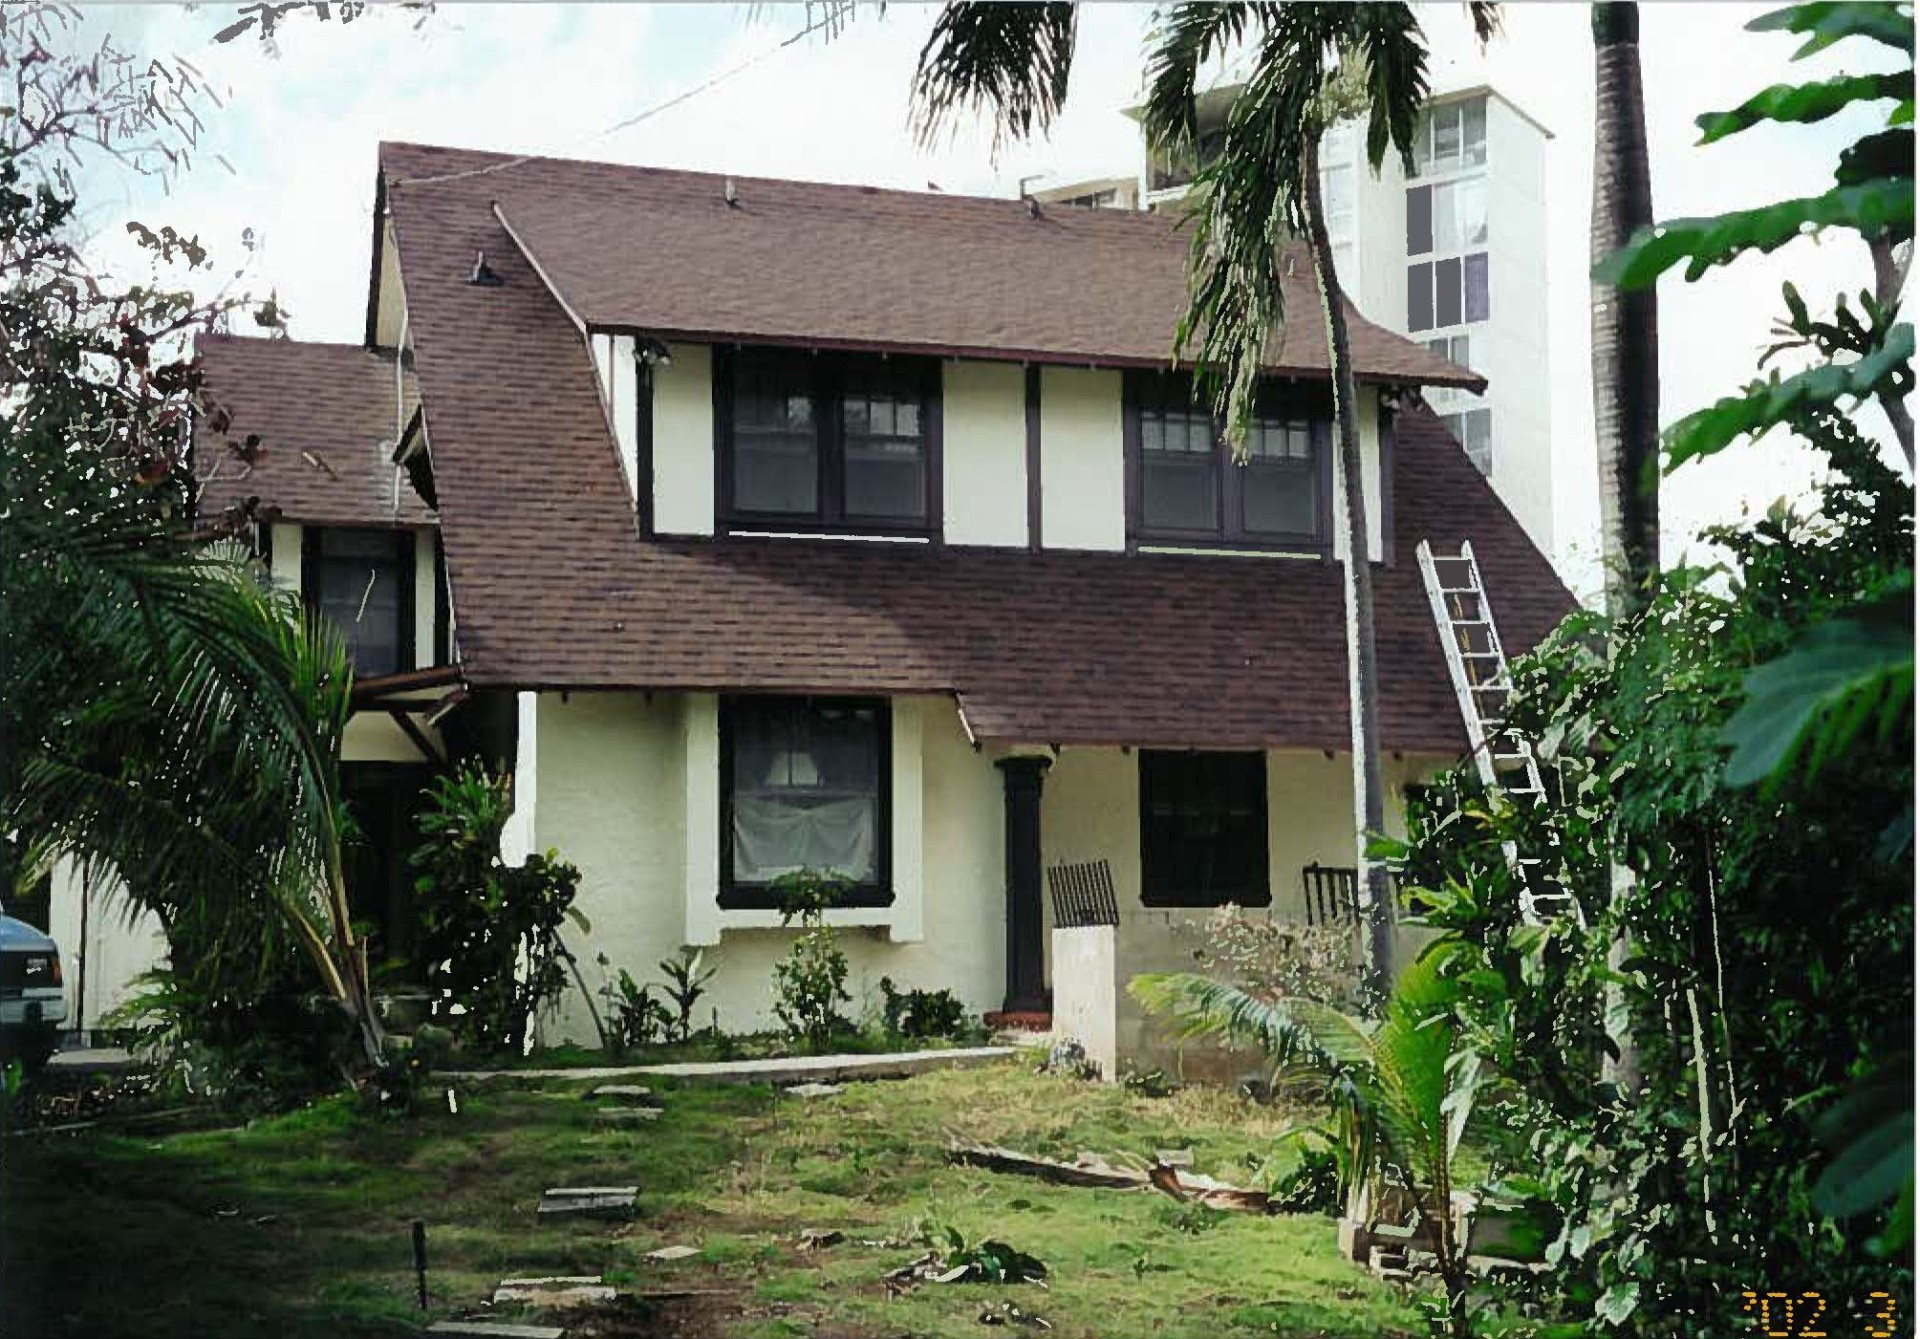 1614 Anapuni Street/1619 Makiki Street/ Mildred M. Yodor House